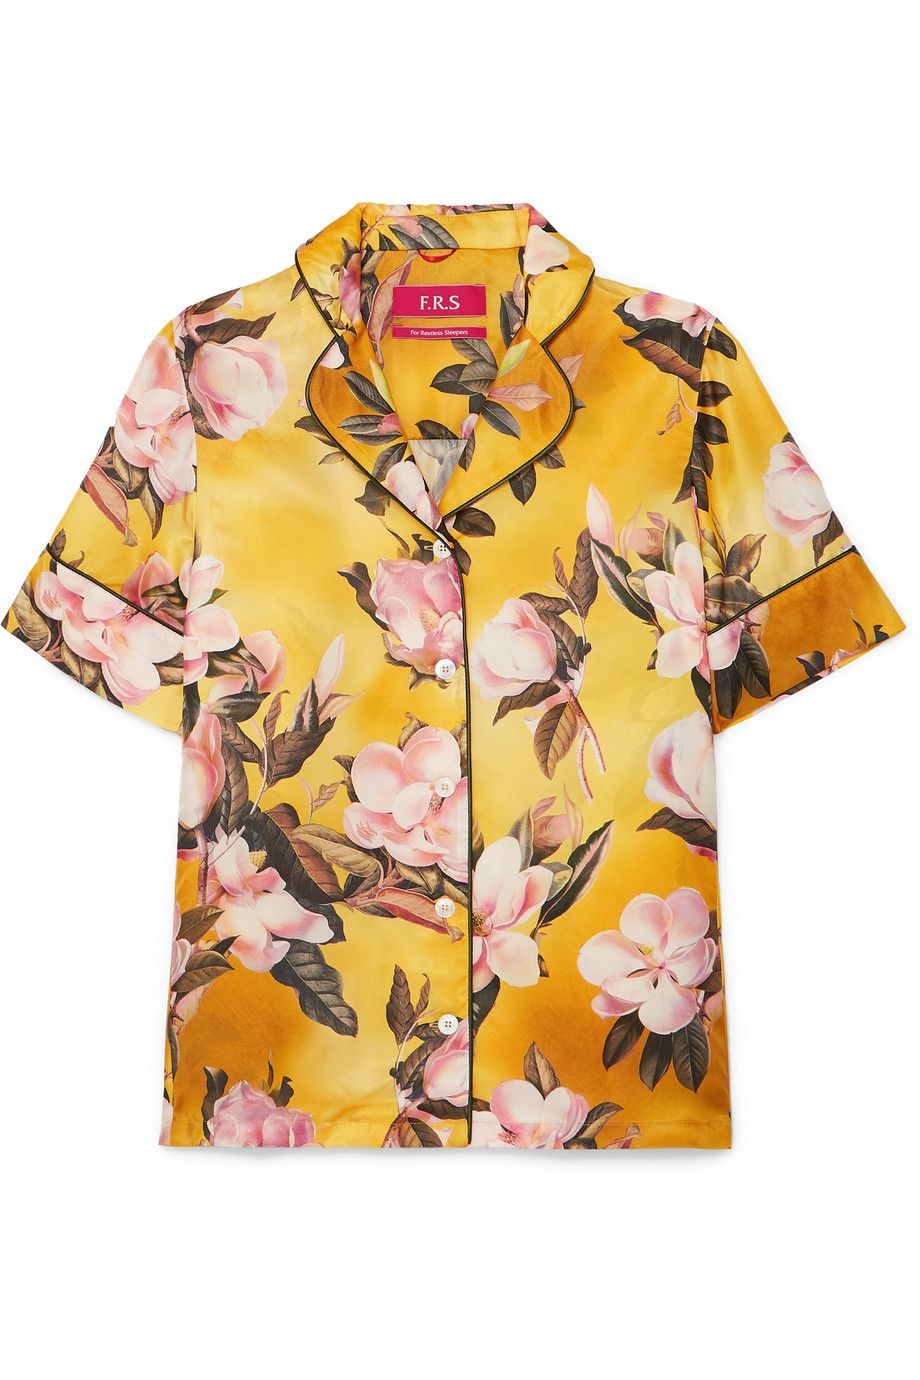 """Bendis Floral-Print Satin-Twill Shirt F.R.S For Restless Sleepers net-a-porter.com $397.50 SHOP NOW """"My go-to for summer office dressing is often a short sleeve blouse teamed with pants or culottes, so I'm definitely stocking up on shirts like this one for the summer. The bright yellow and pink flowers of this desig feel especially warm weather-appropriate."""" —Nikki Ogunnaike, Style Director"""